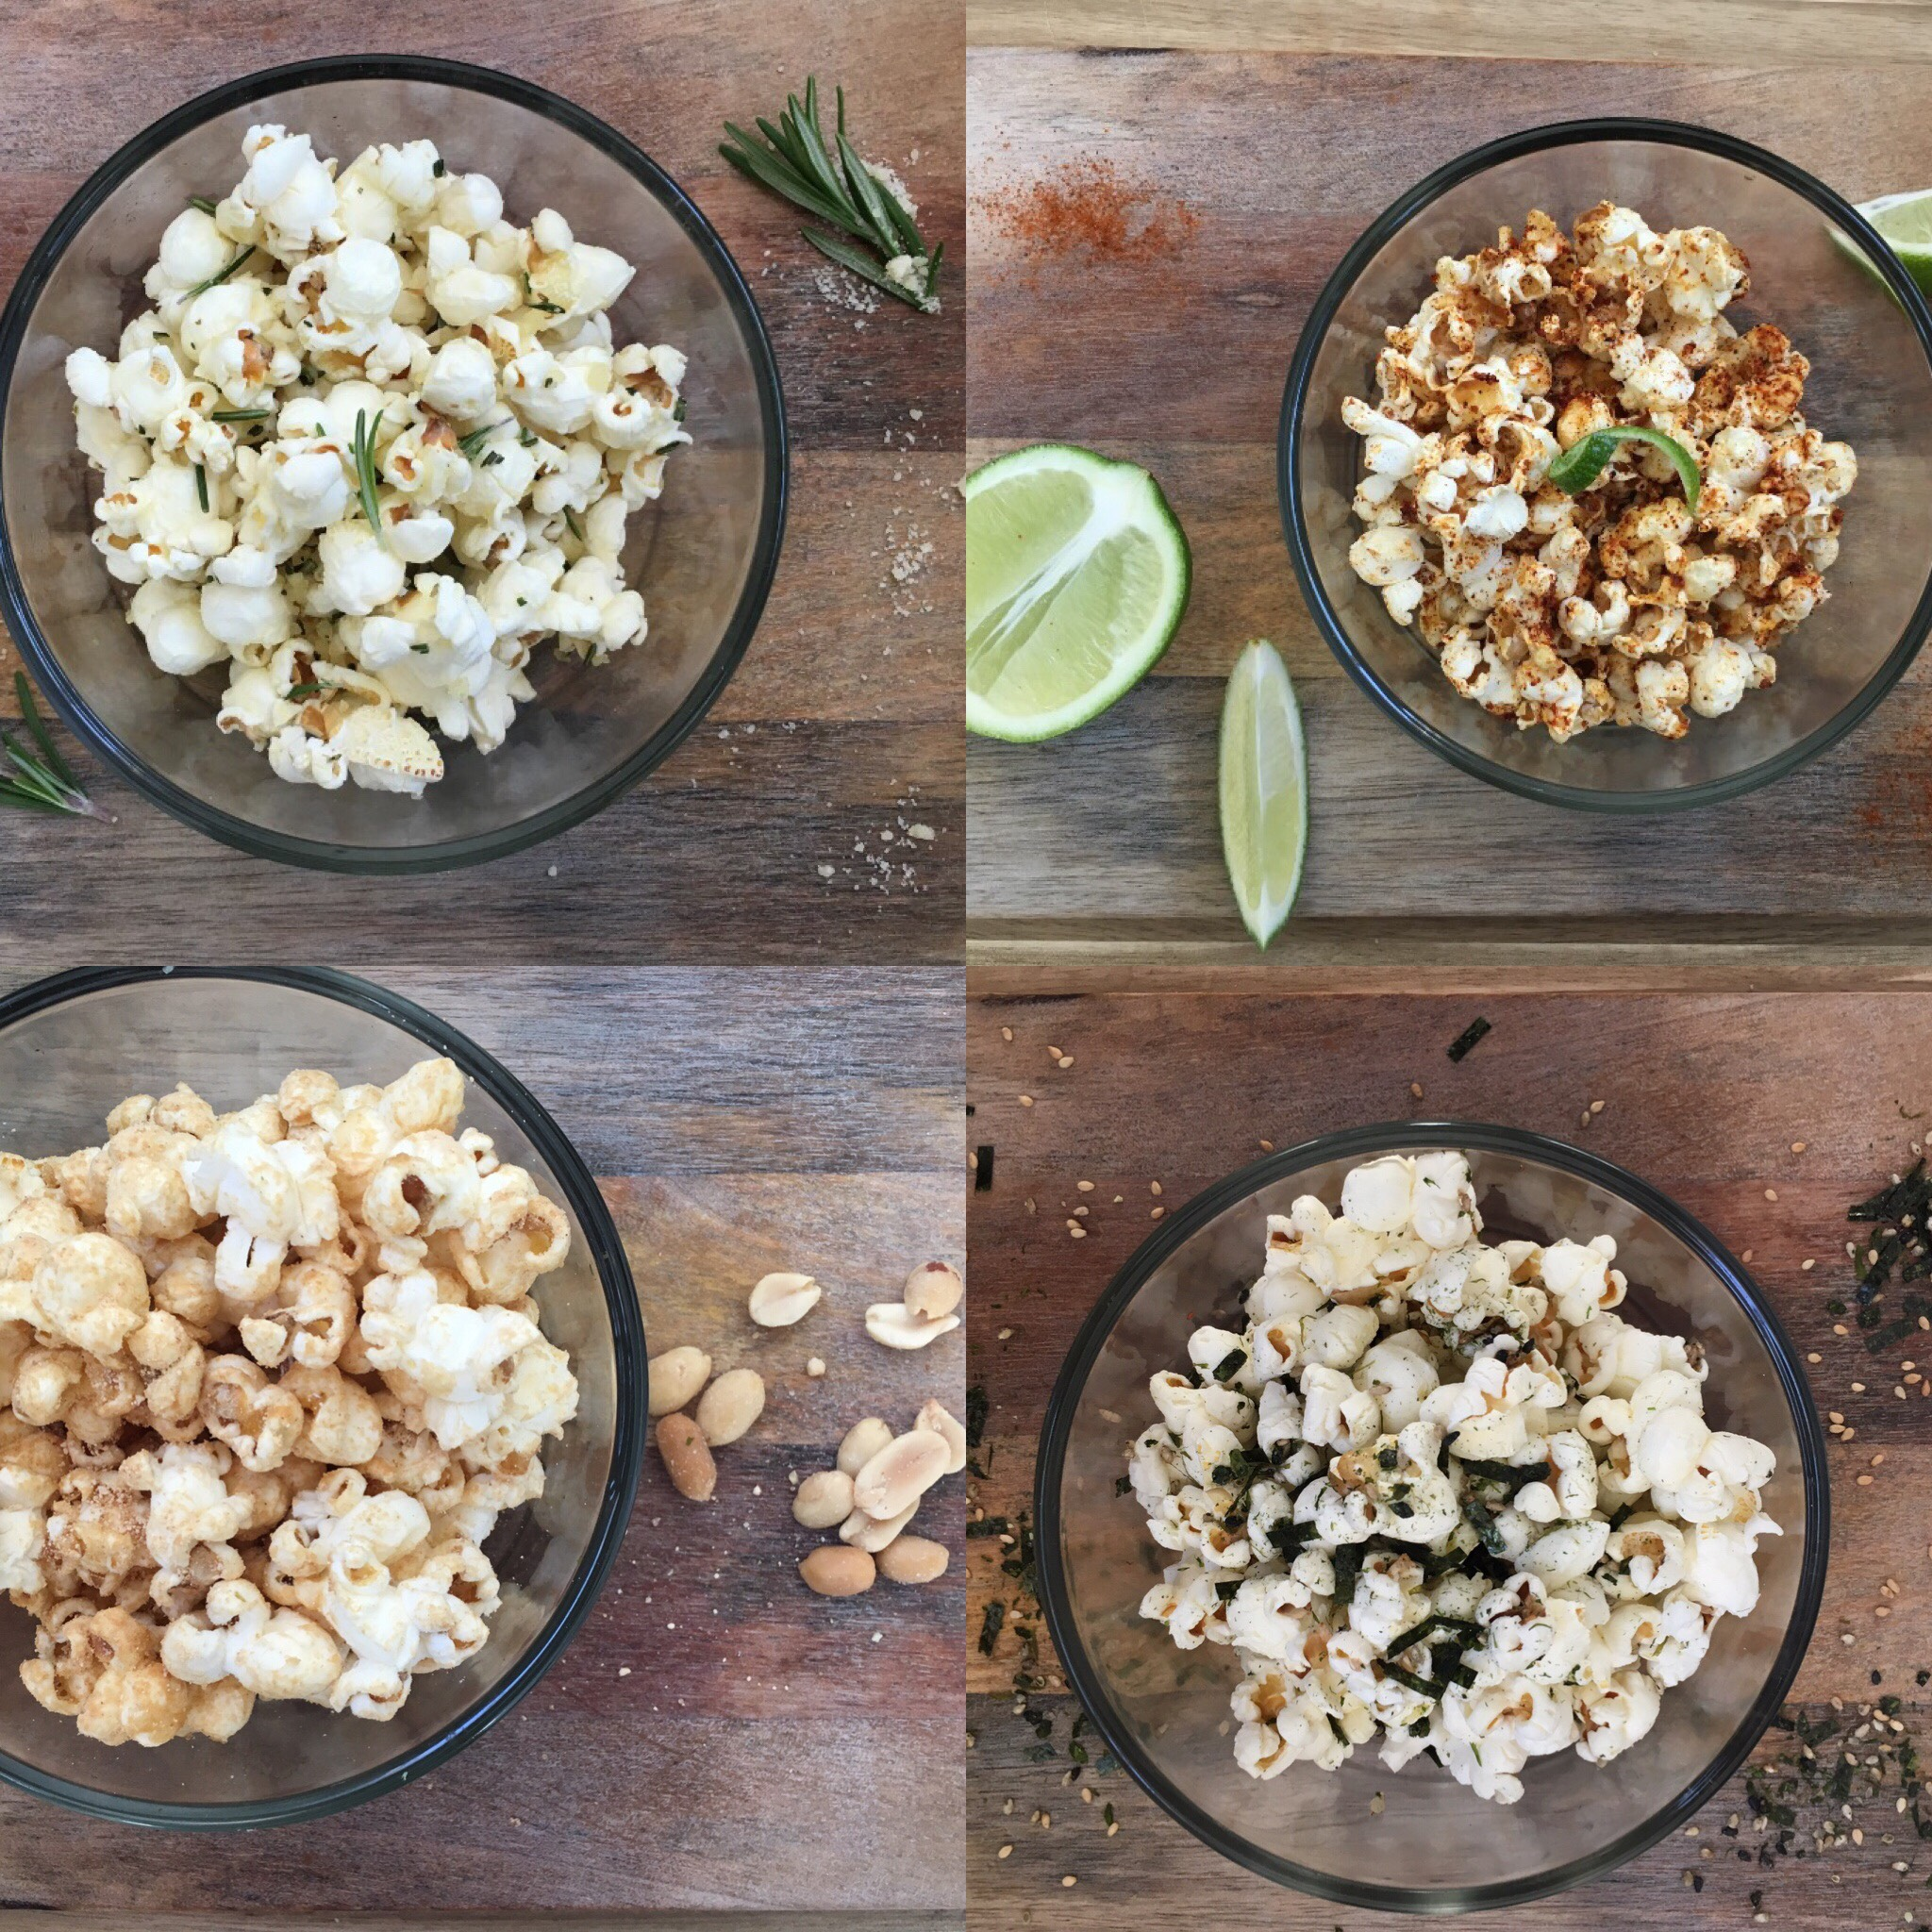 Smart snacking: Four homemade popcorn recipes